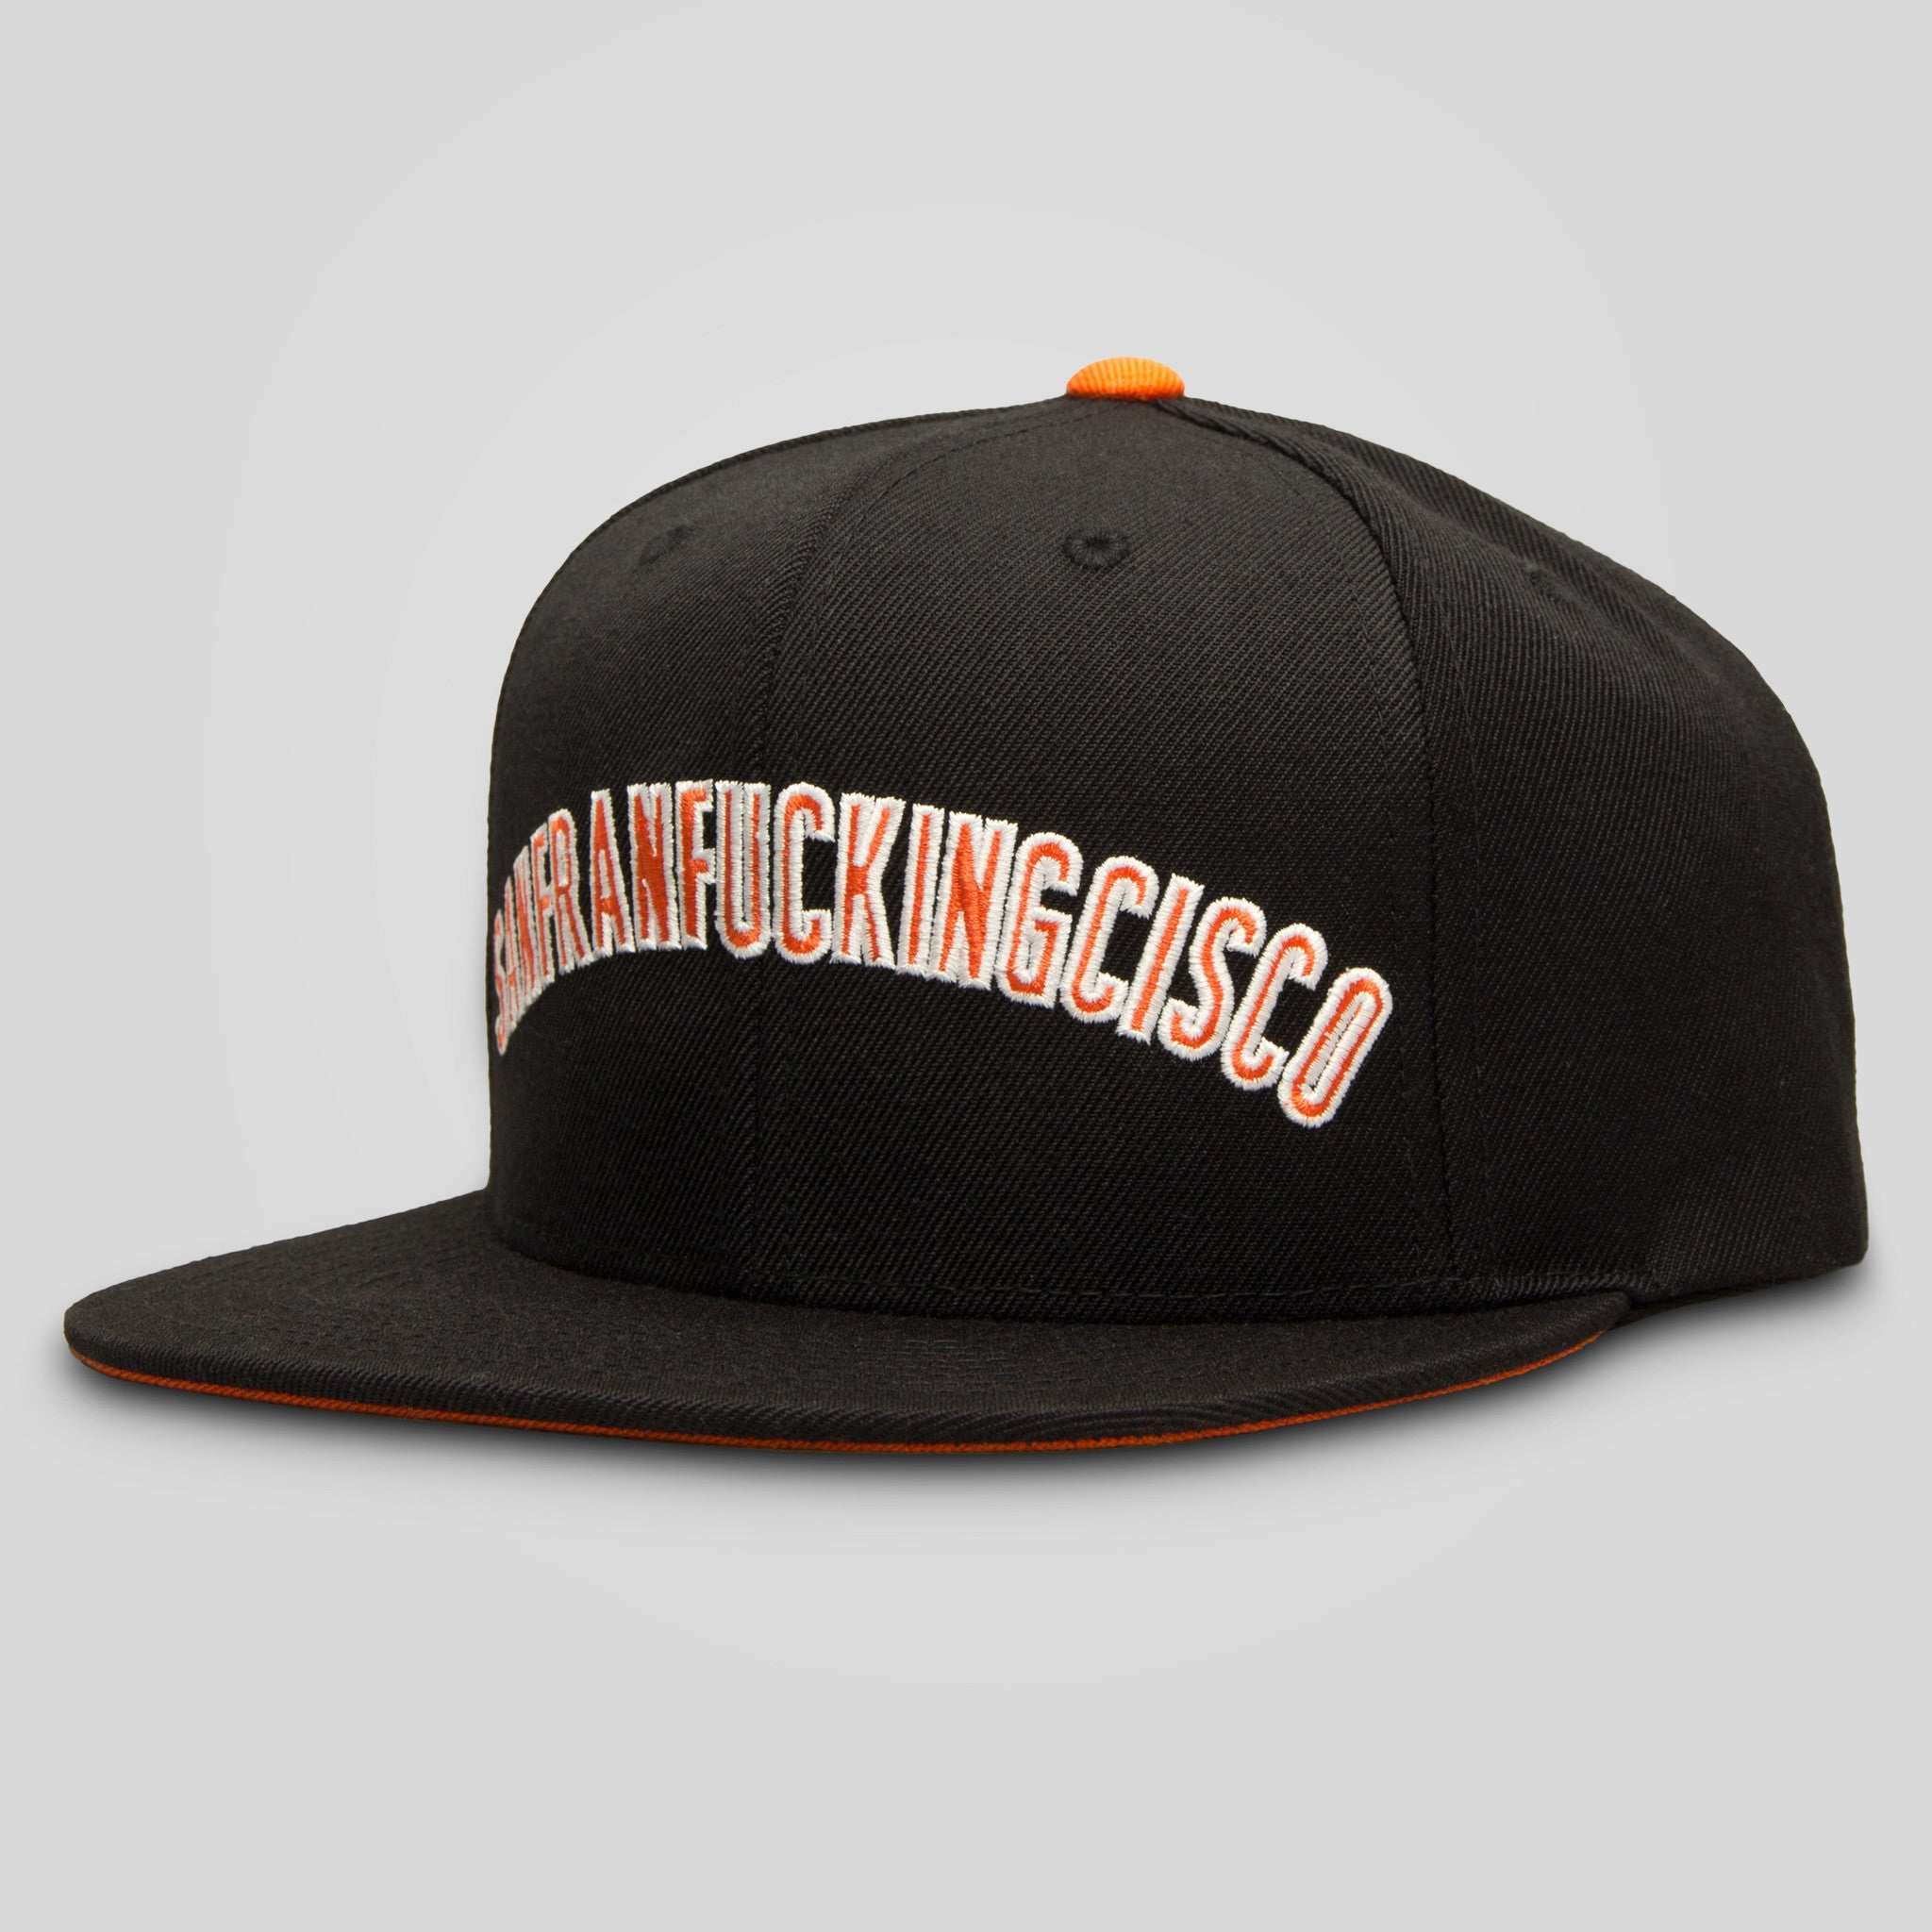 a38174be61a Upper Playground - Lux - San Franfuckingcisco Starter Cap by Bly-Fordham ...